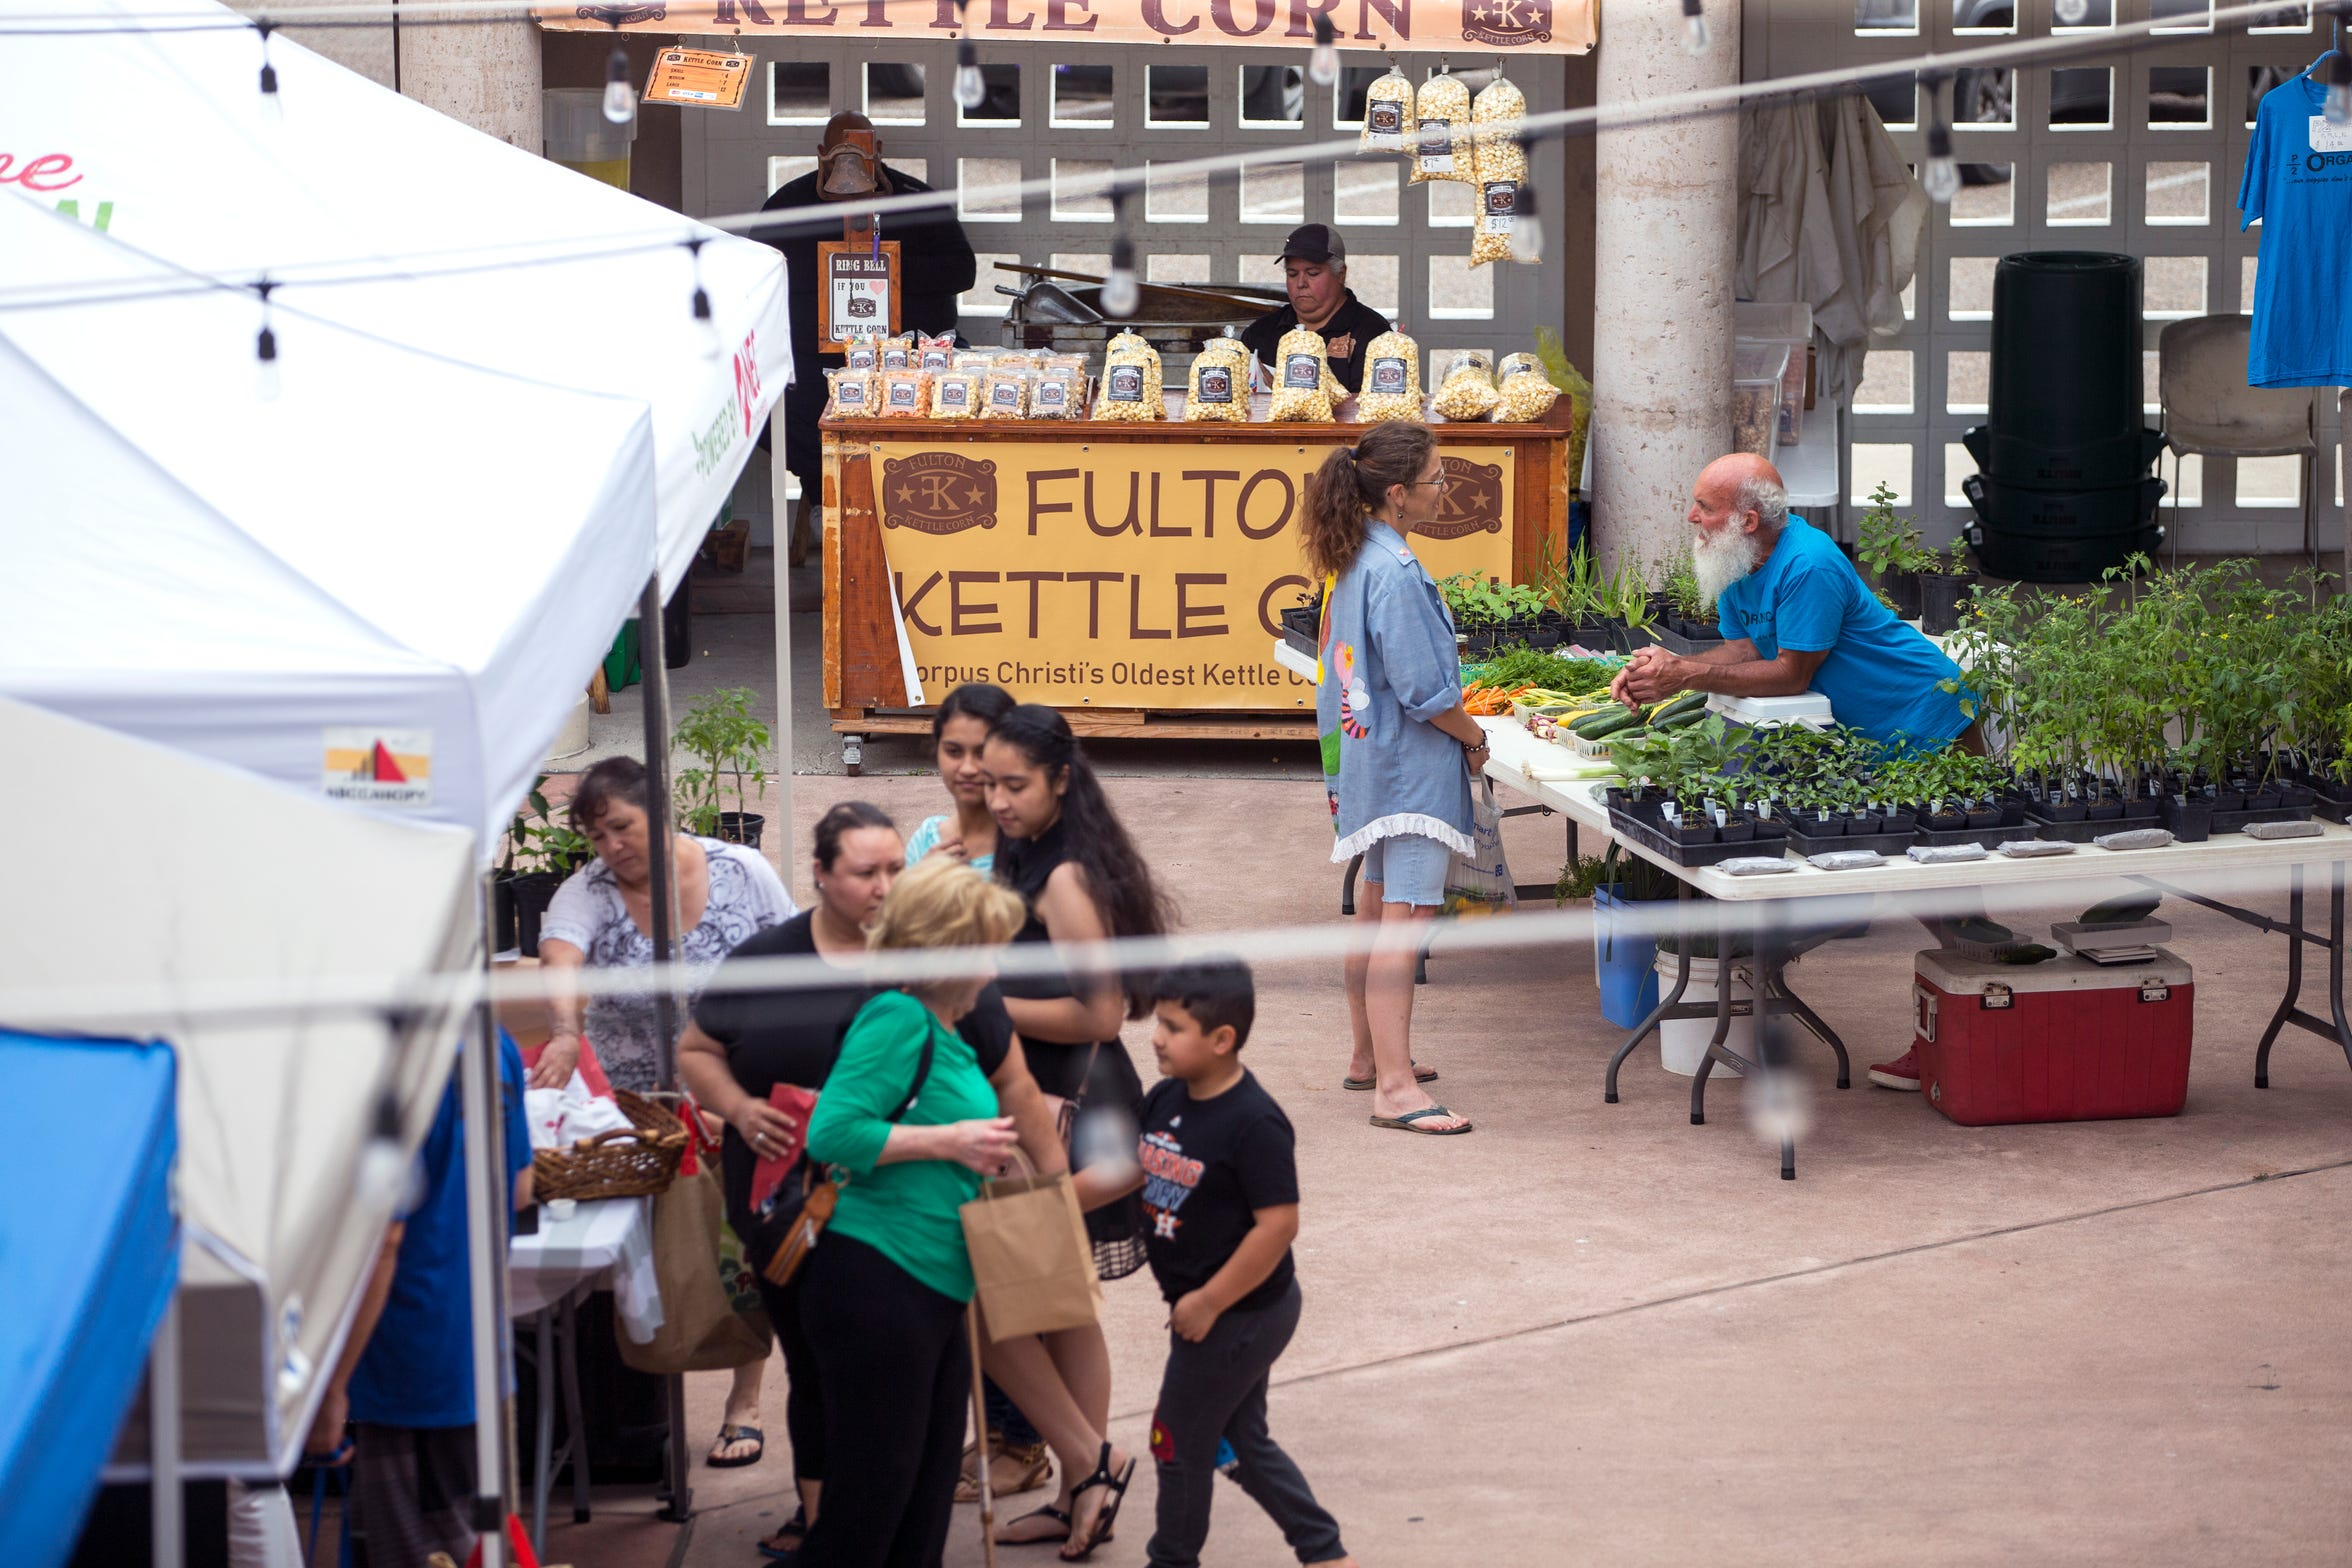 Shoppers visit the Corpus Christi Downtown Farmers Market on Wednesday, April 24, 2019. It offers a variety of seasonal produce, grass fed beef, pastured raised poultry, prepared goods such as roasted coffee, sweets and preserves and baked goods. It is open weekly on Wednesday from 5 to 8 pm at 100 N. Shoreline Blvd.